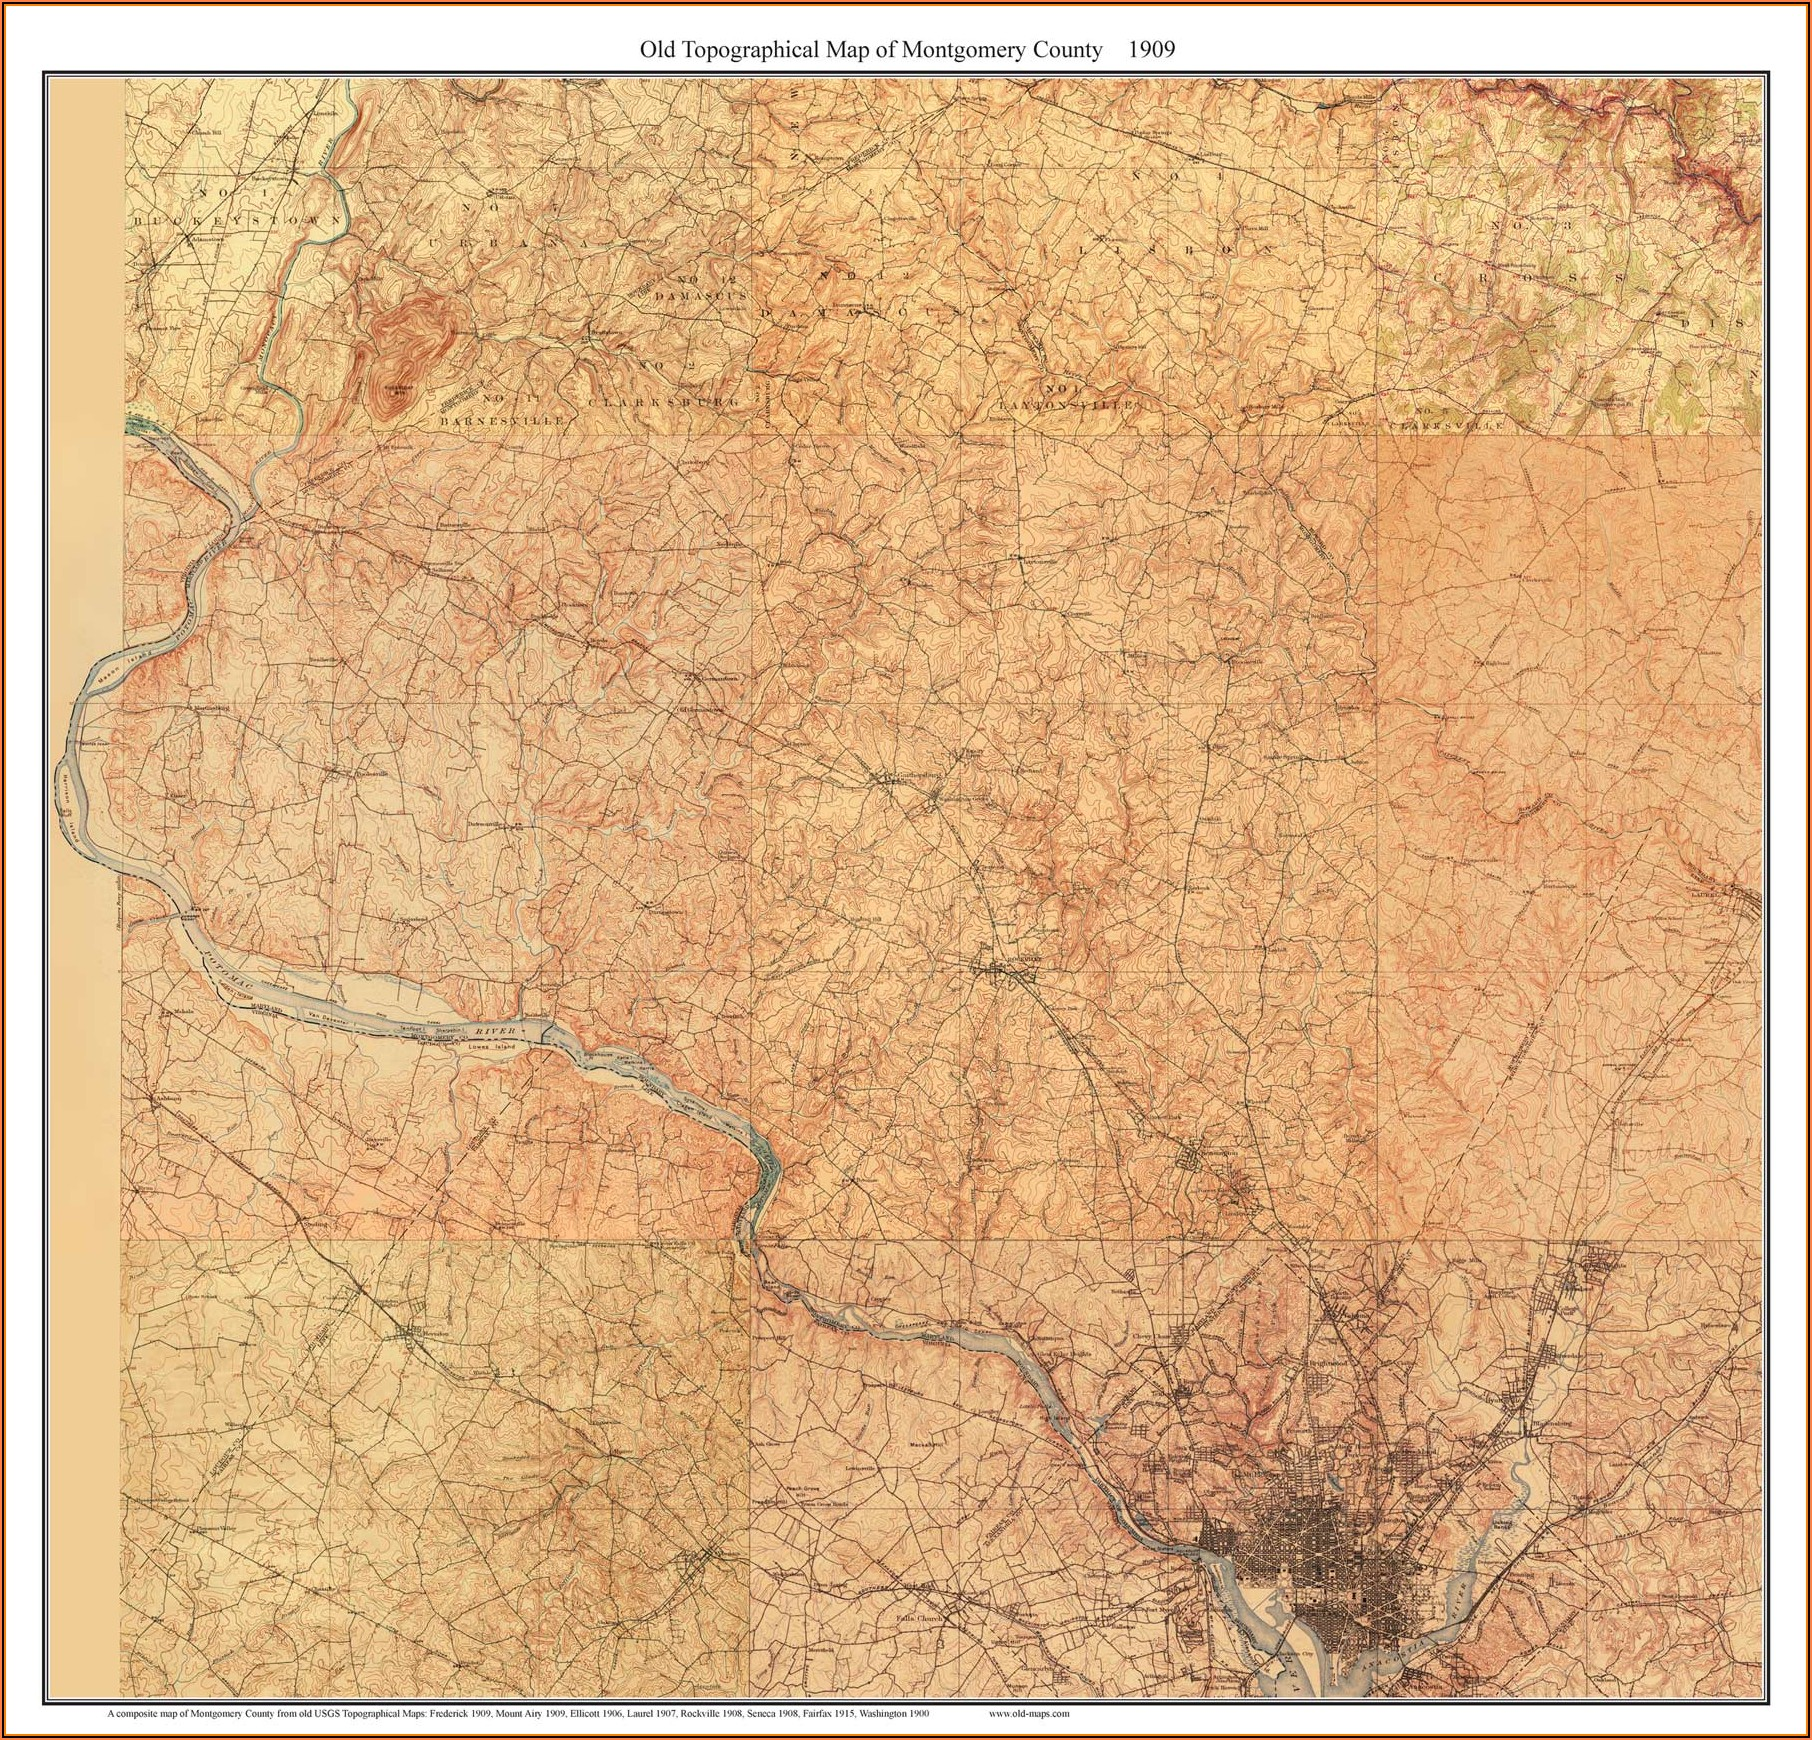 Old Topographic Maps Of Maryland